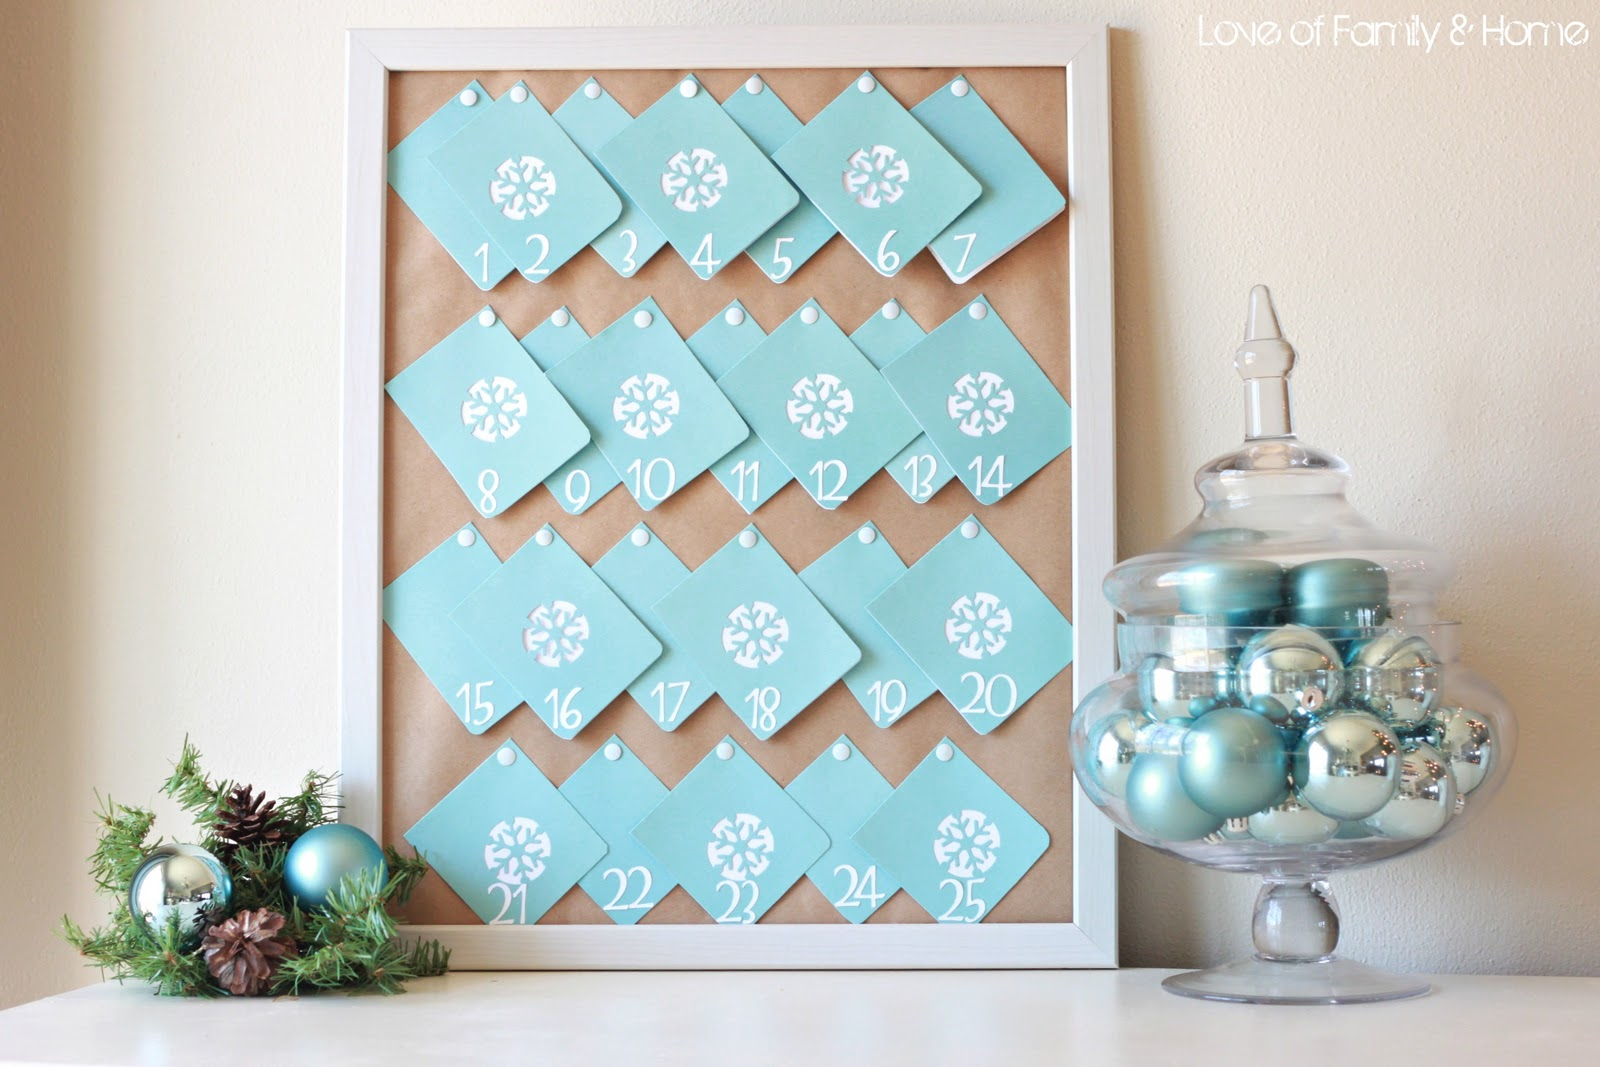 Calendar Advent Diy : Diy advent calendar archives love of family home